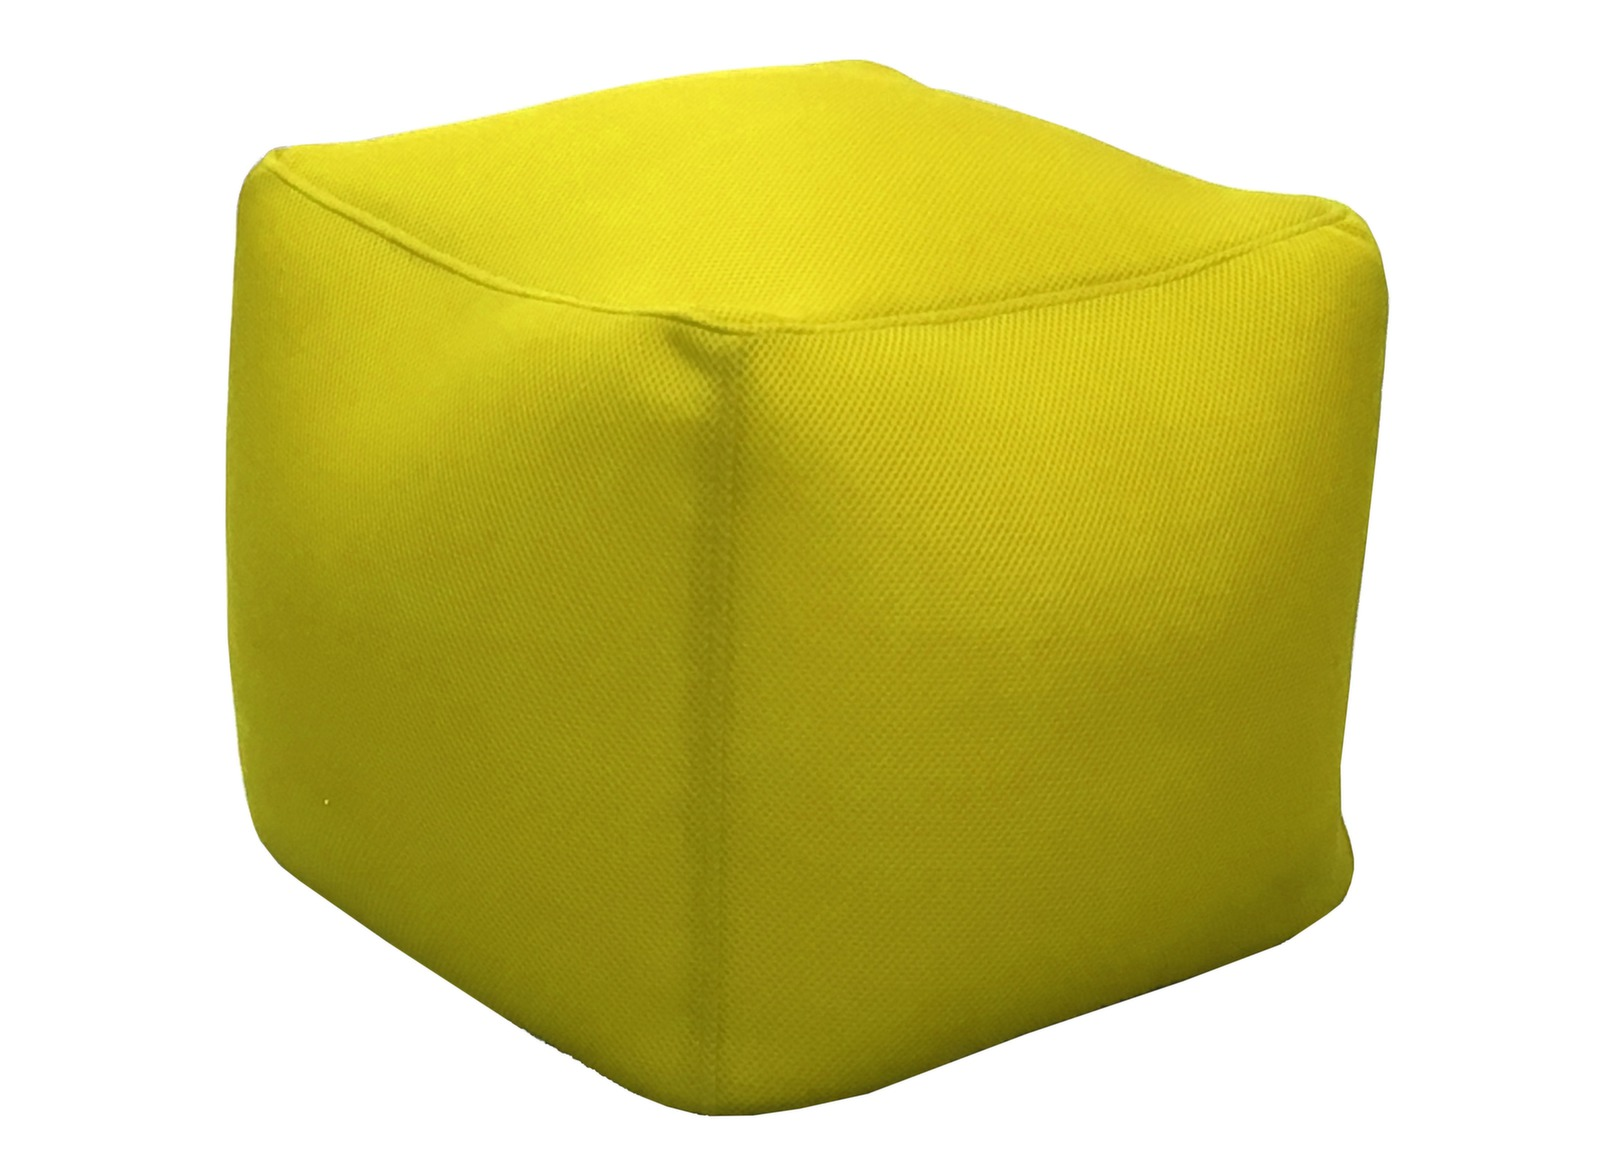 big coussin exterieur gros pouf gacant bicolore jumbo bag bowly coloris pas cher solde. Black Bedroom Furniture Sets. Home Design Ideas